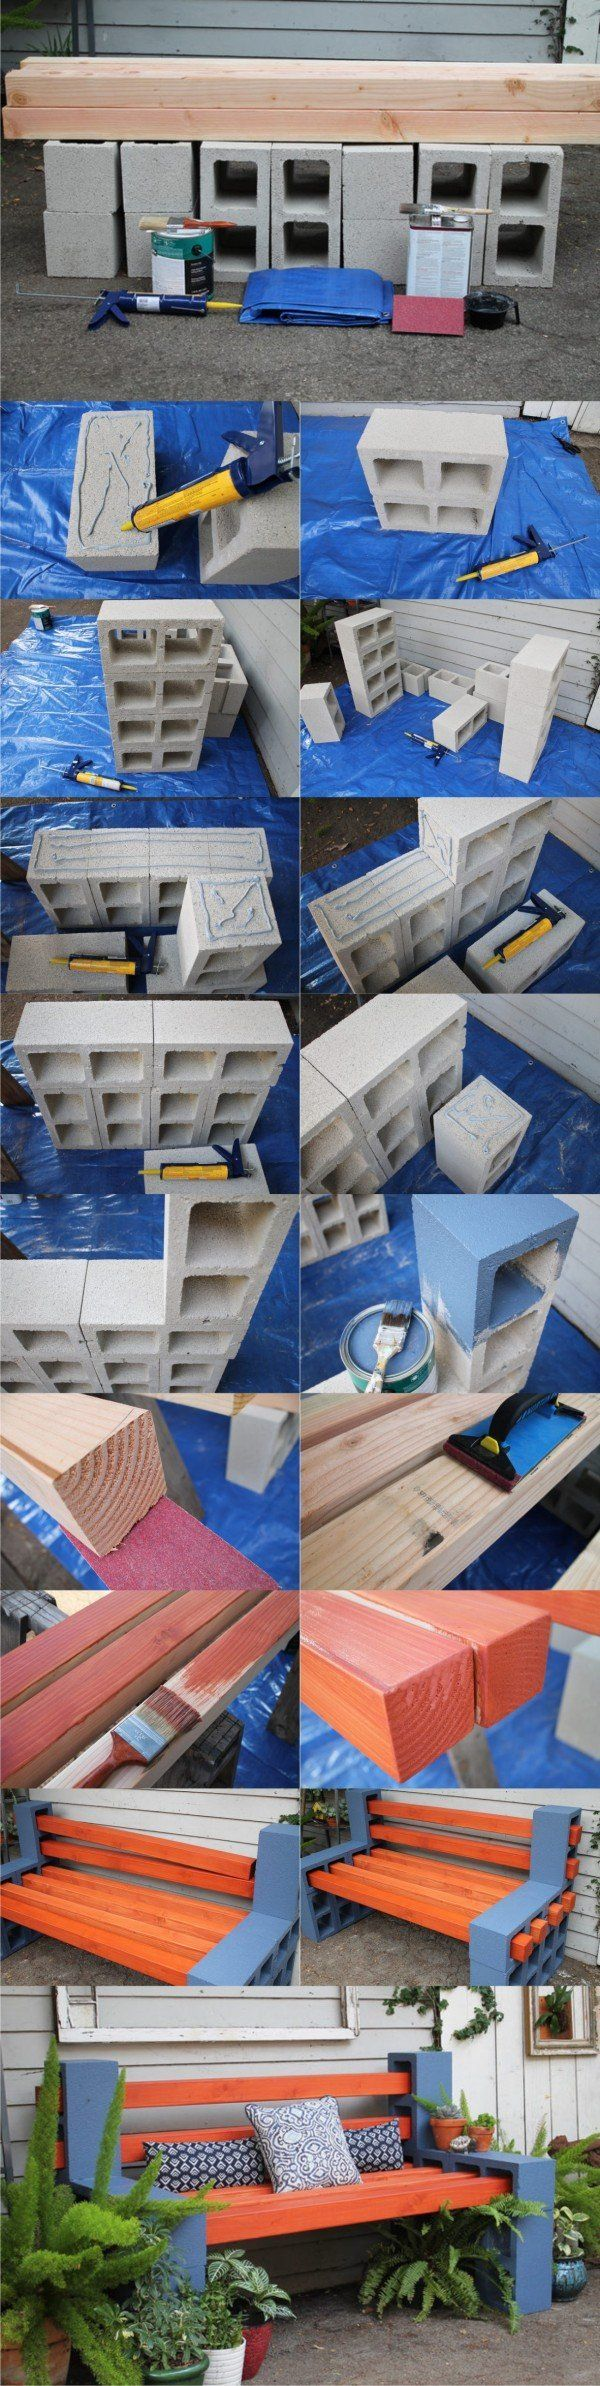 Diy patio furniture cinder blocks - Best 25 Cinder Block Bench Ideas On Pinterest Cinder Block Furniture Bench Block And Diy Patio Furniture Cheap